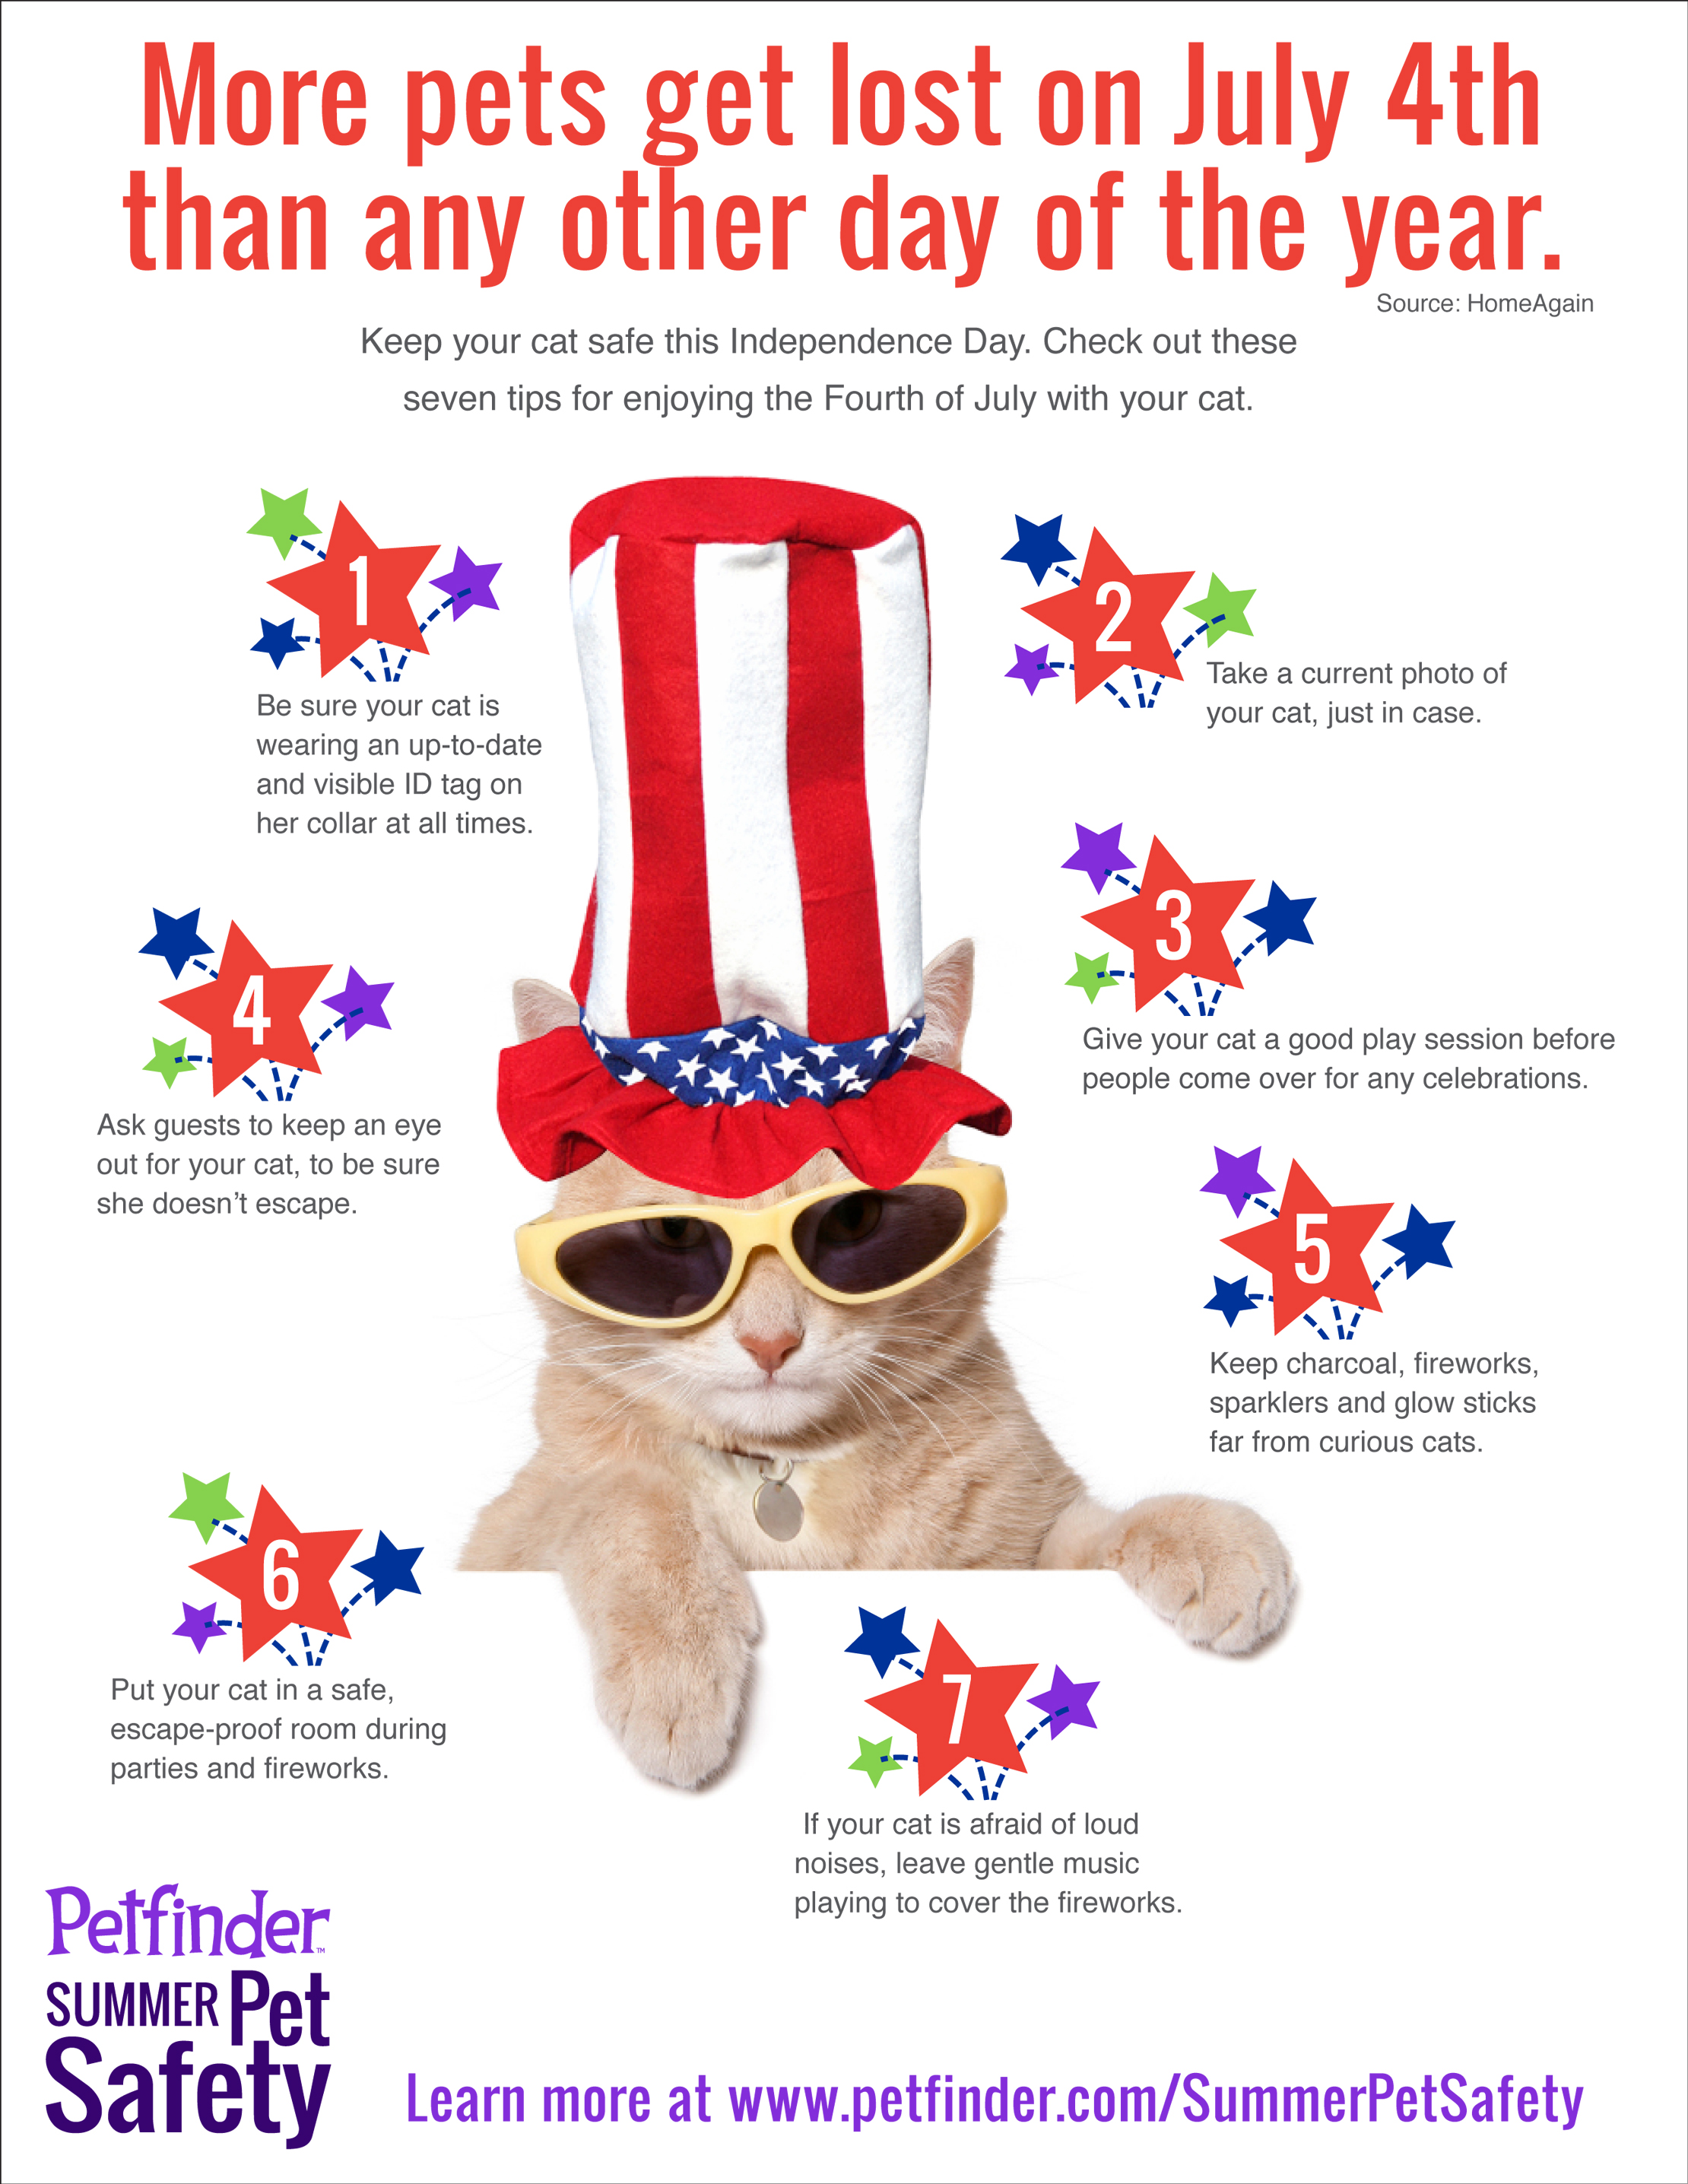 Keep Your Pet Safe on the Fourth of July